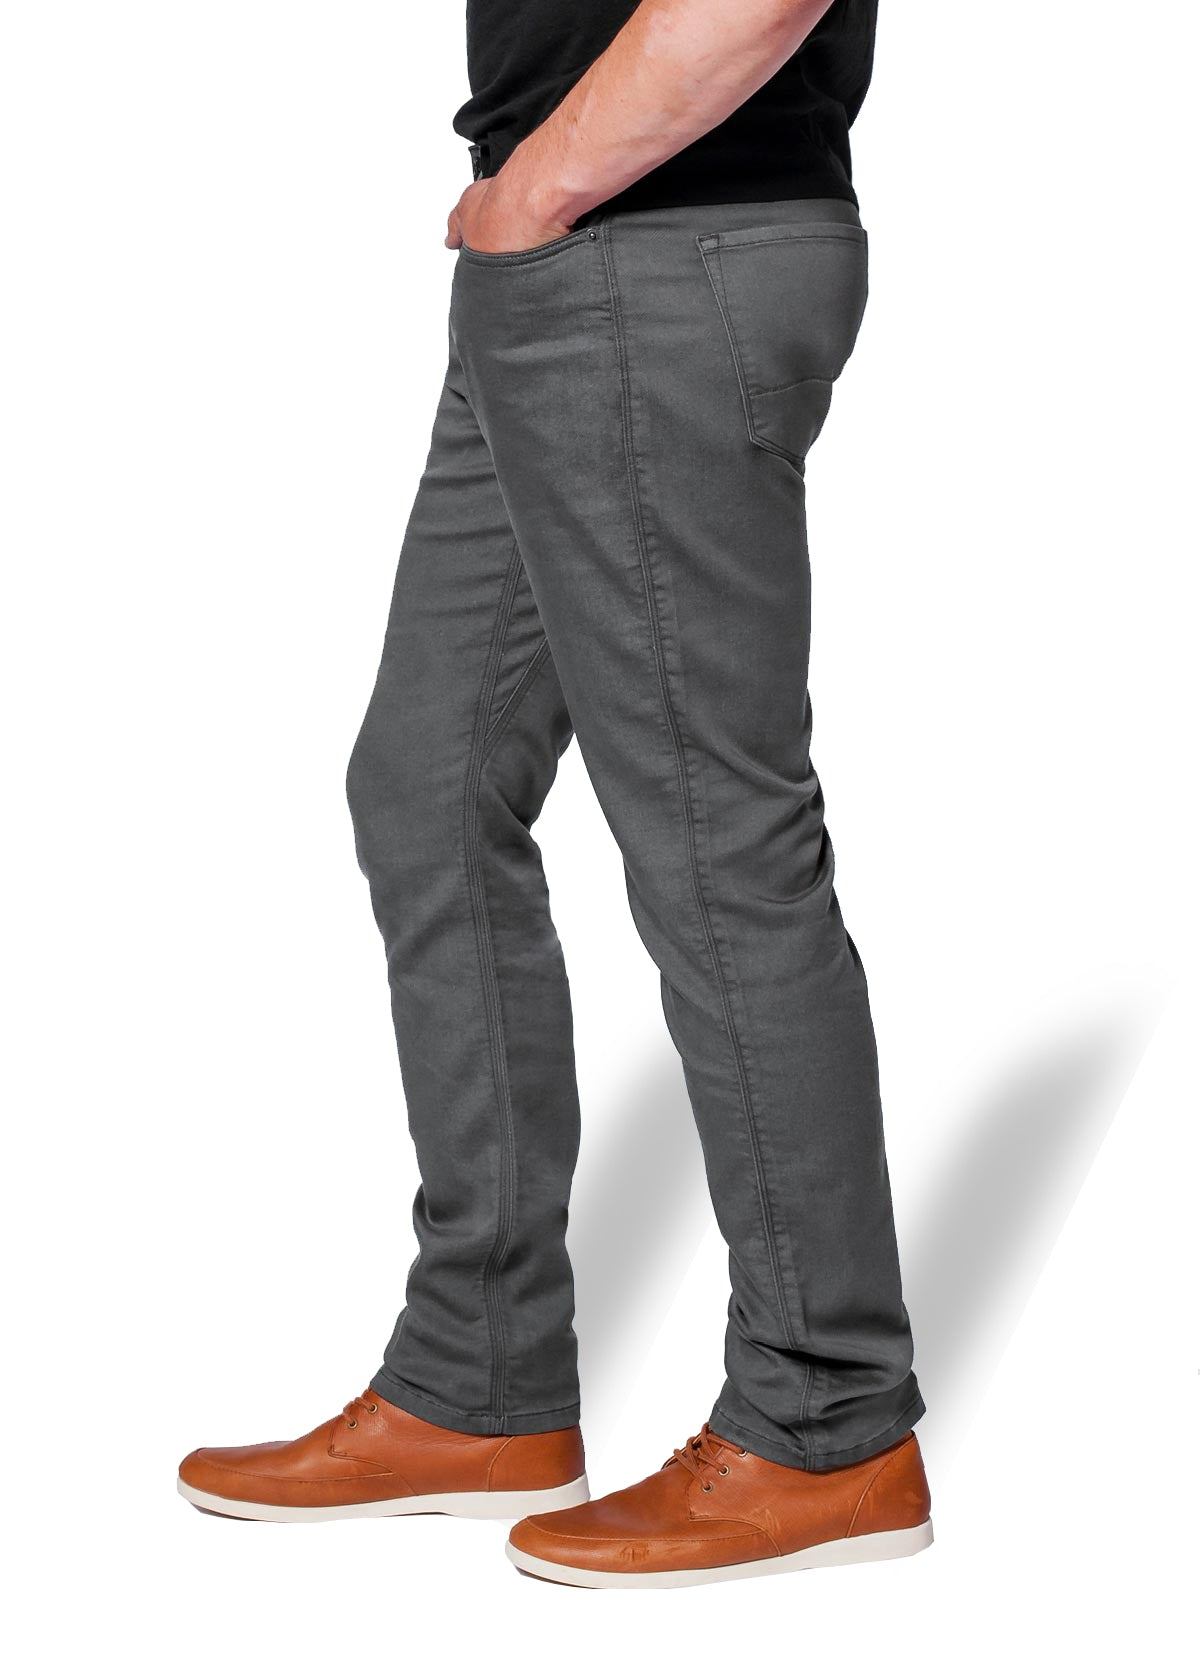 Duer No Sweat Pant Relaxed for Men in Gull Grey